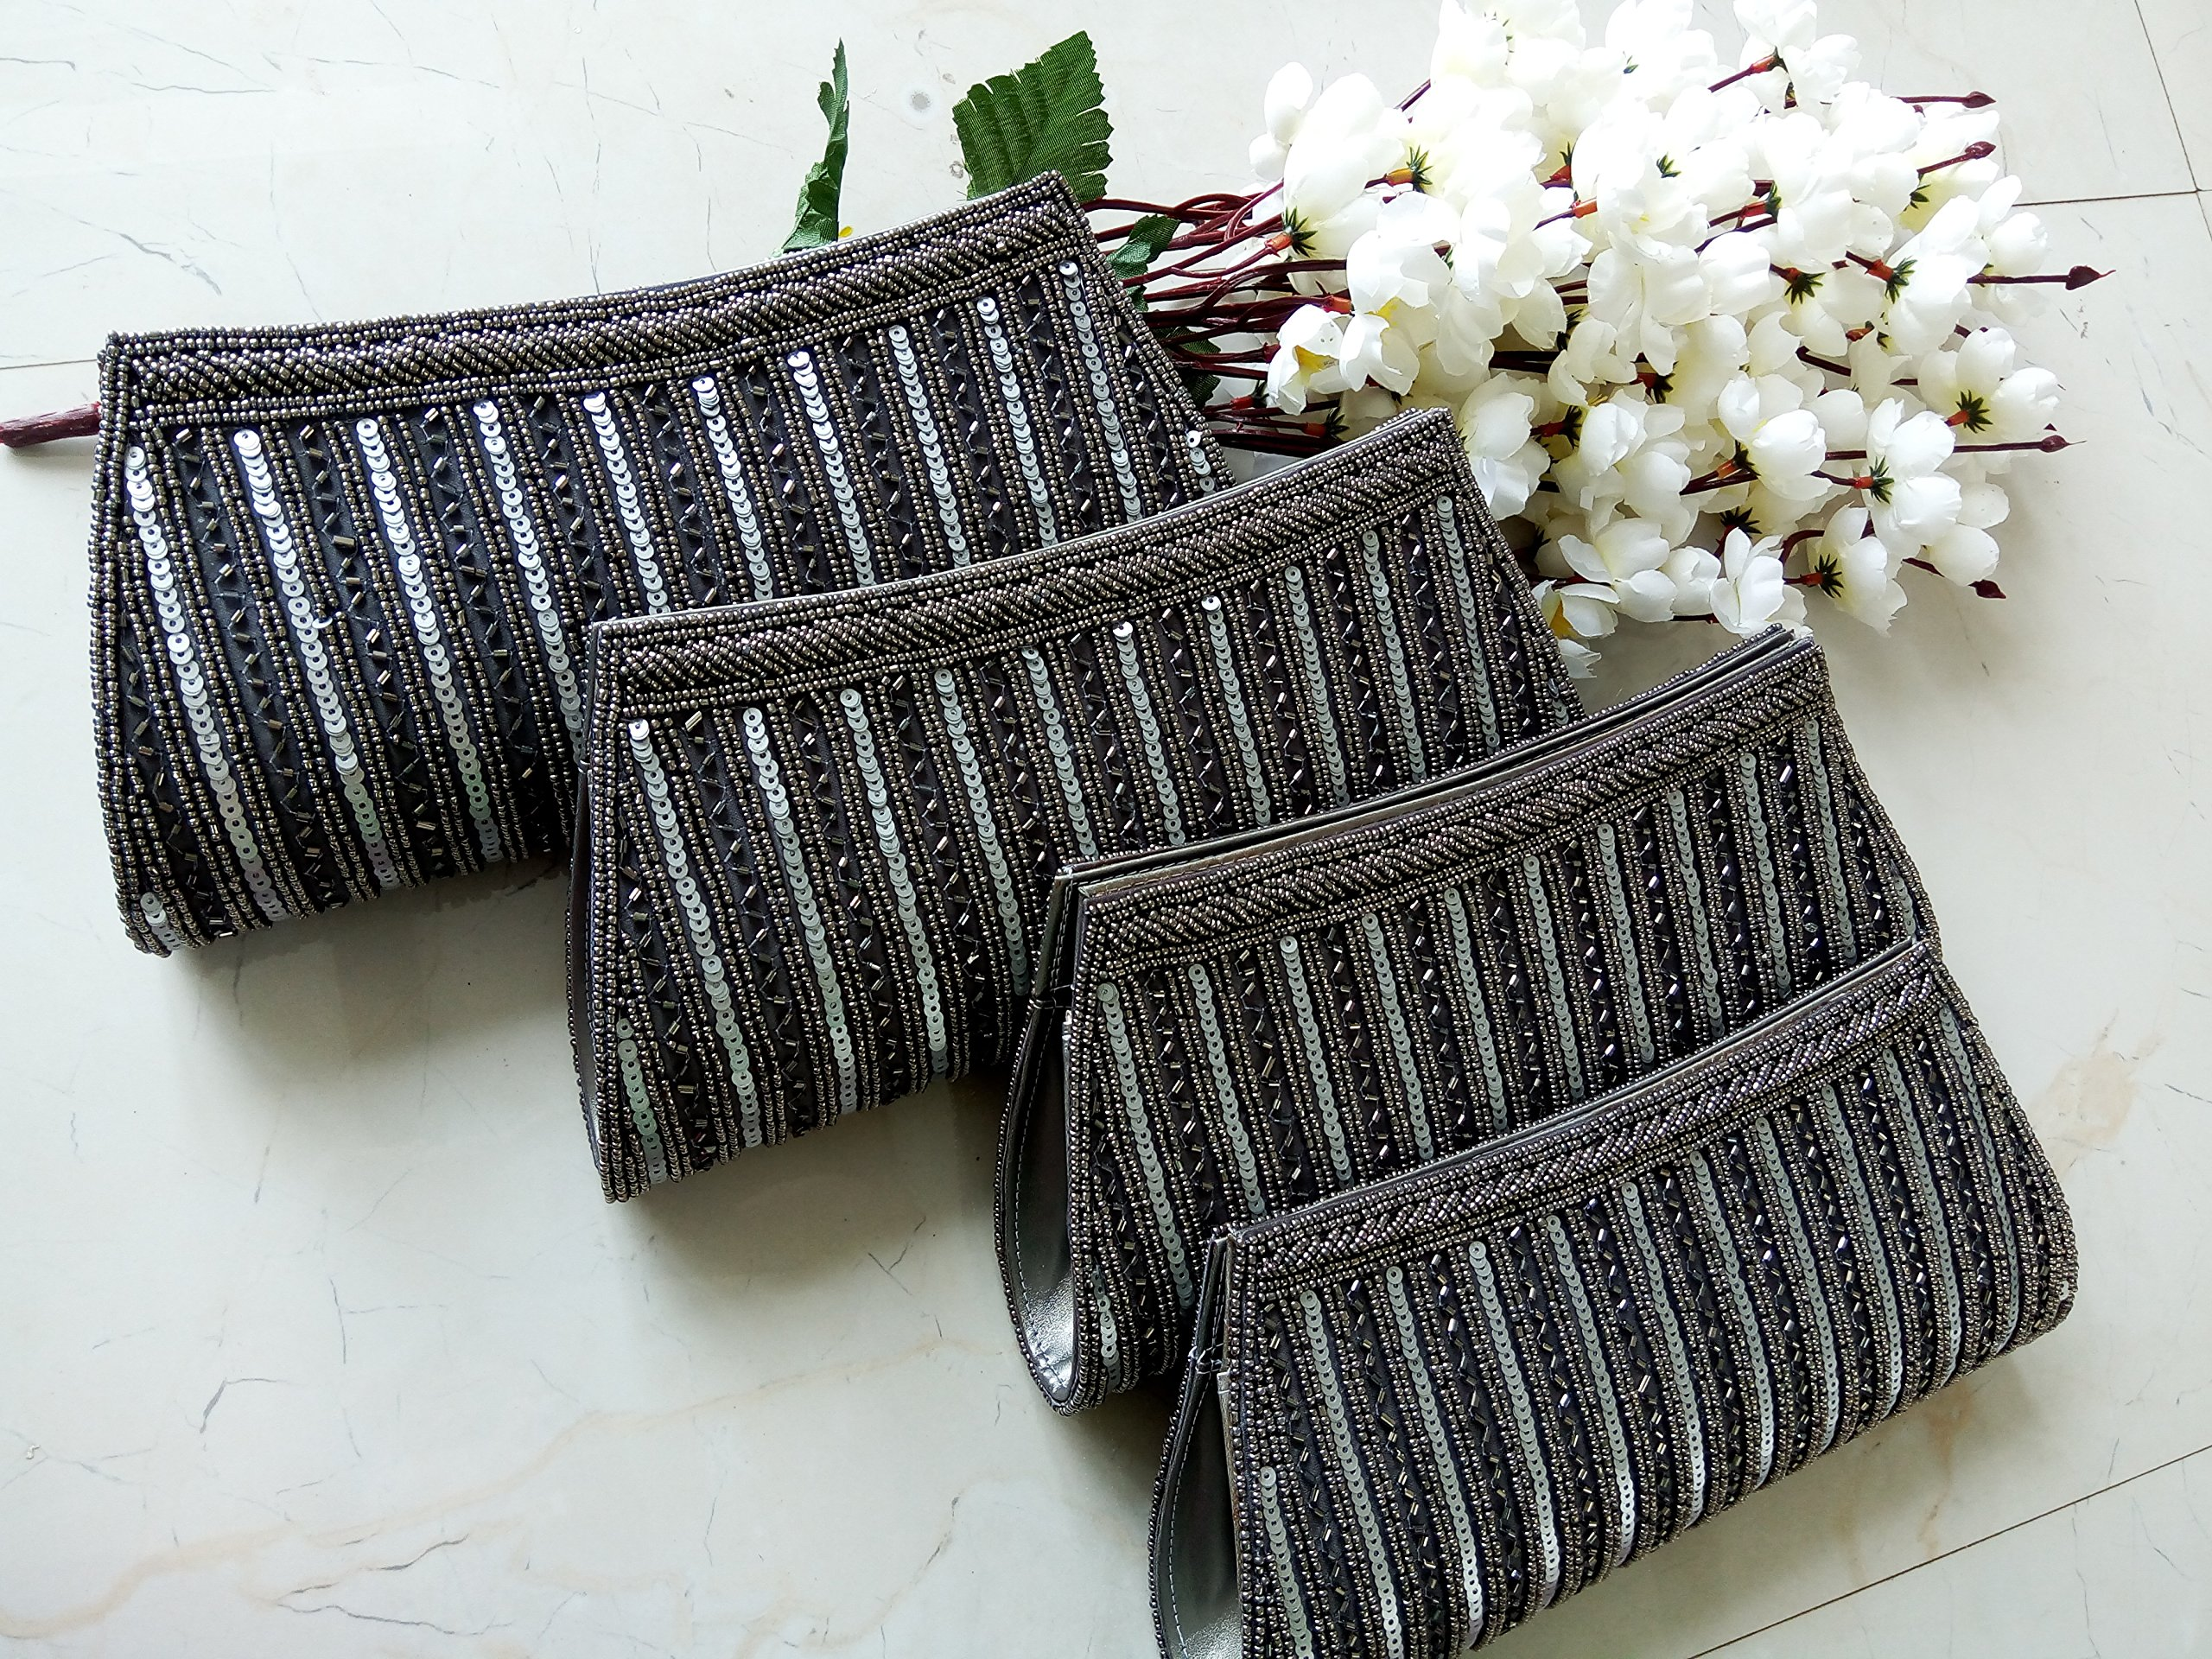 Gray Beaded clutch Indian wedding bags Bridal clutches set of 4 Women wallet Bridesmaids Gift Bag Indian wedding purse